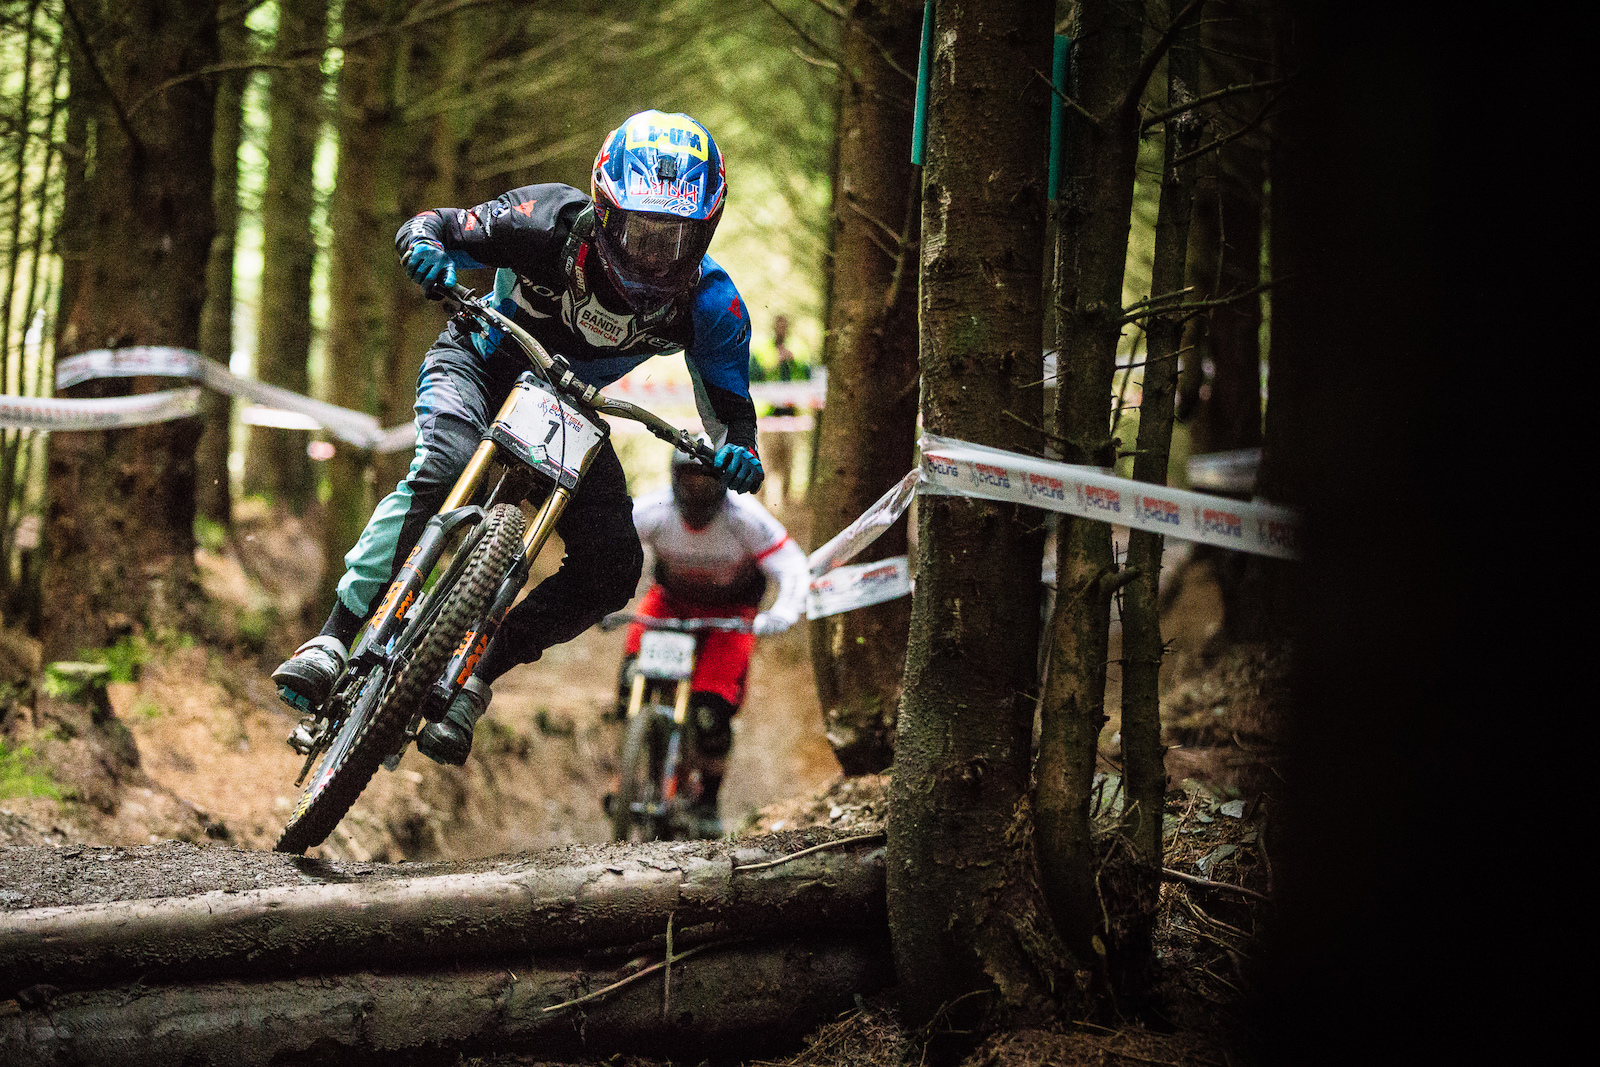 With the success of Lenzerheide keeping spirits high Danny Hart is searching for every advantage on track and showing some serious speed in practice.